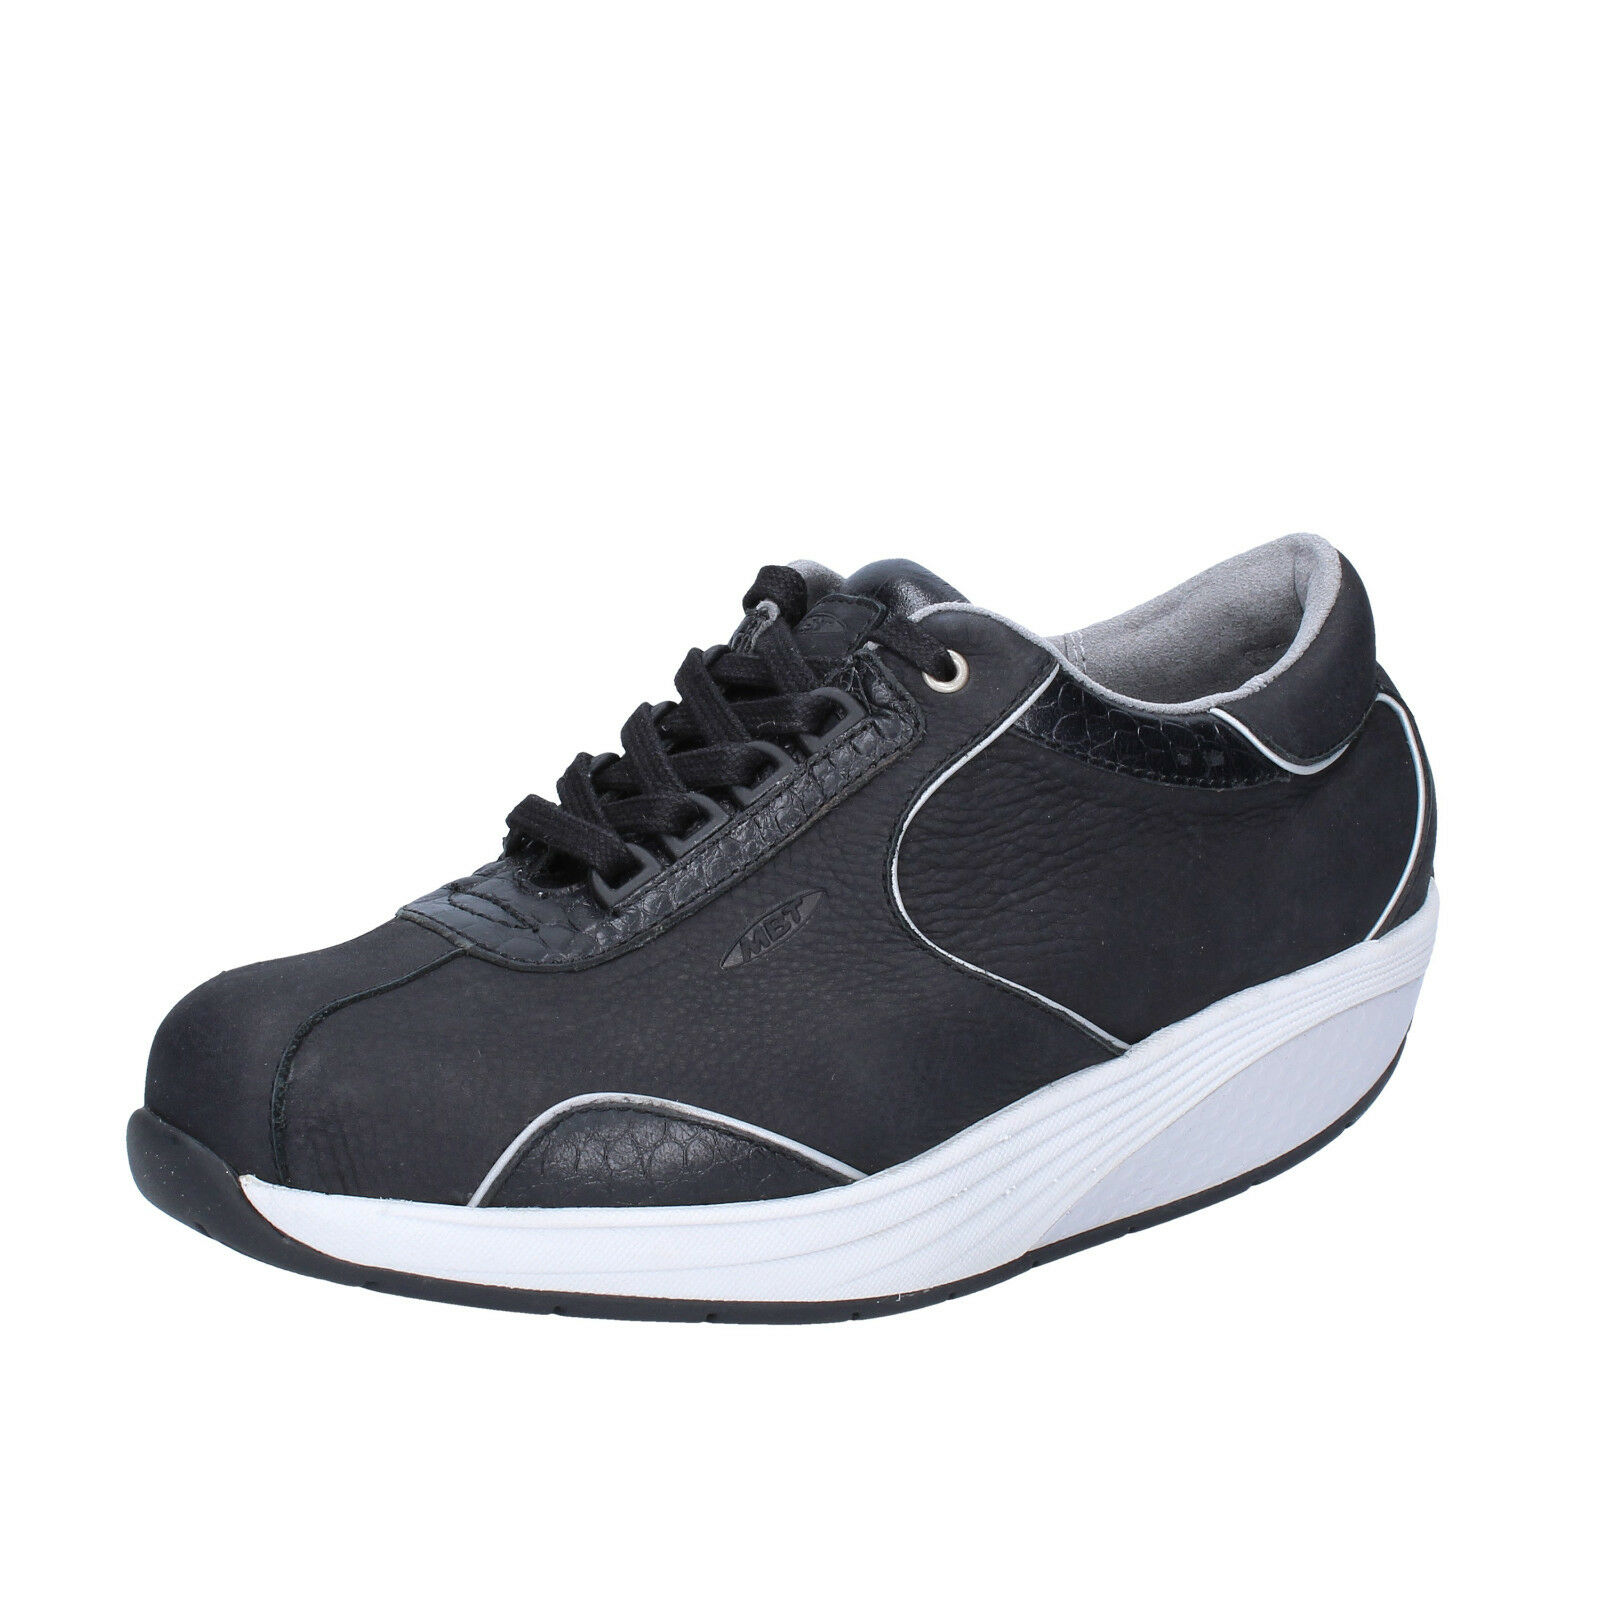 Femme   chaussures  MBT 3,5 (EU 36) sneakers  noir  leather performance BT65-36